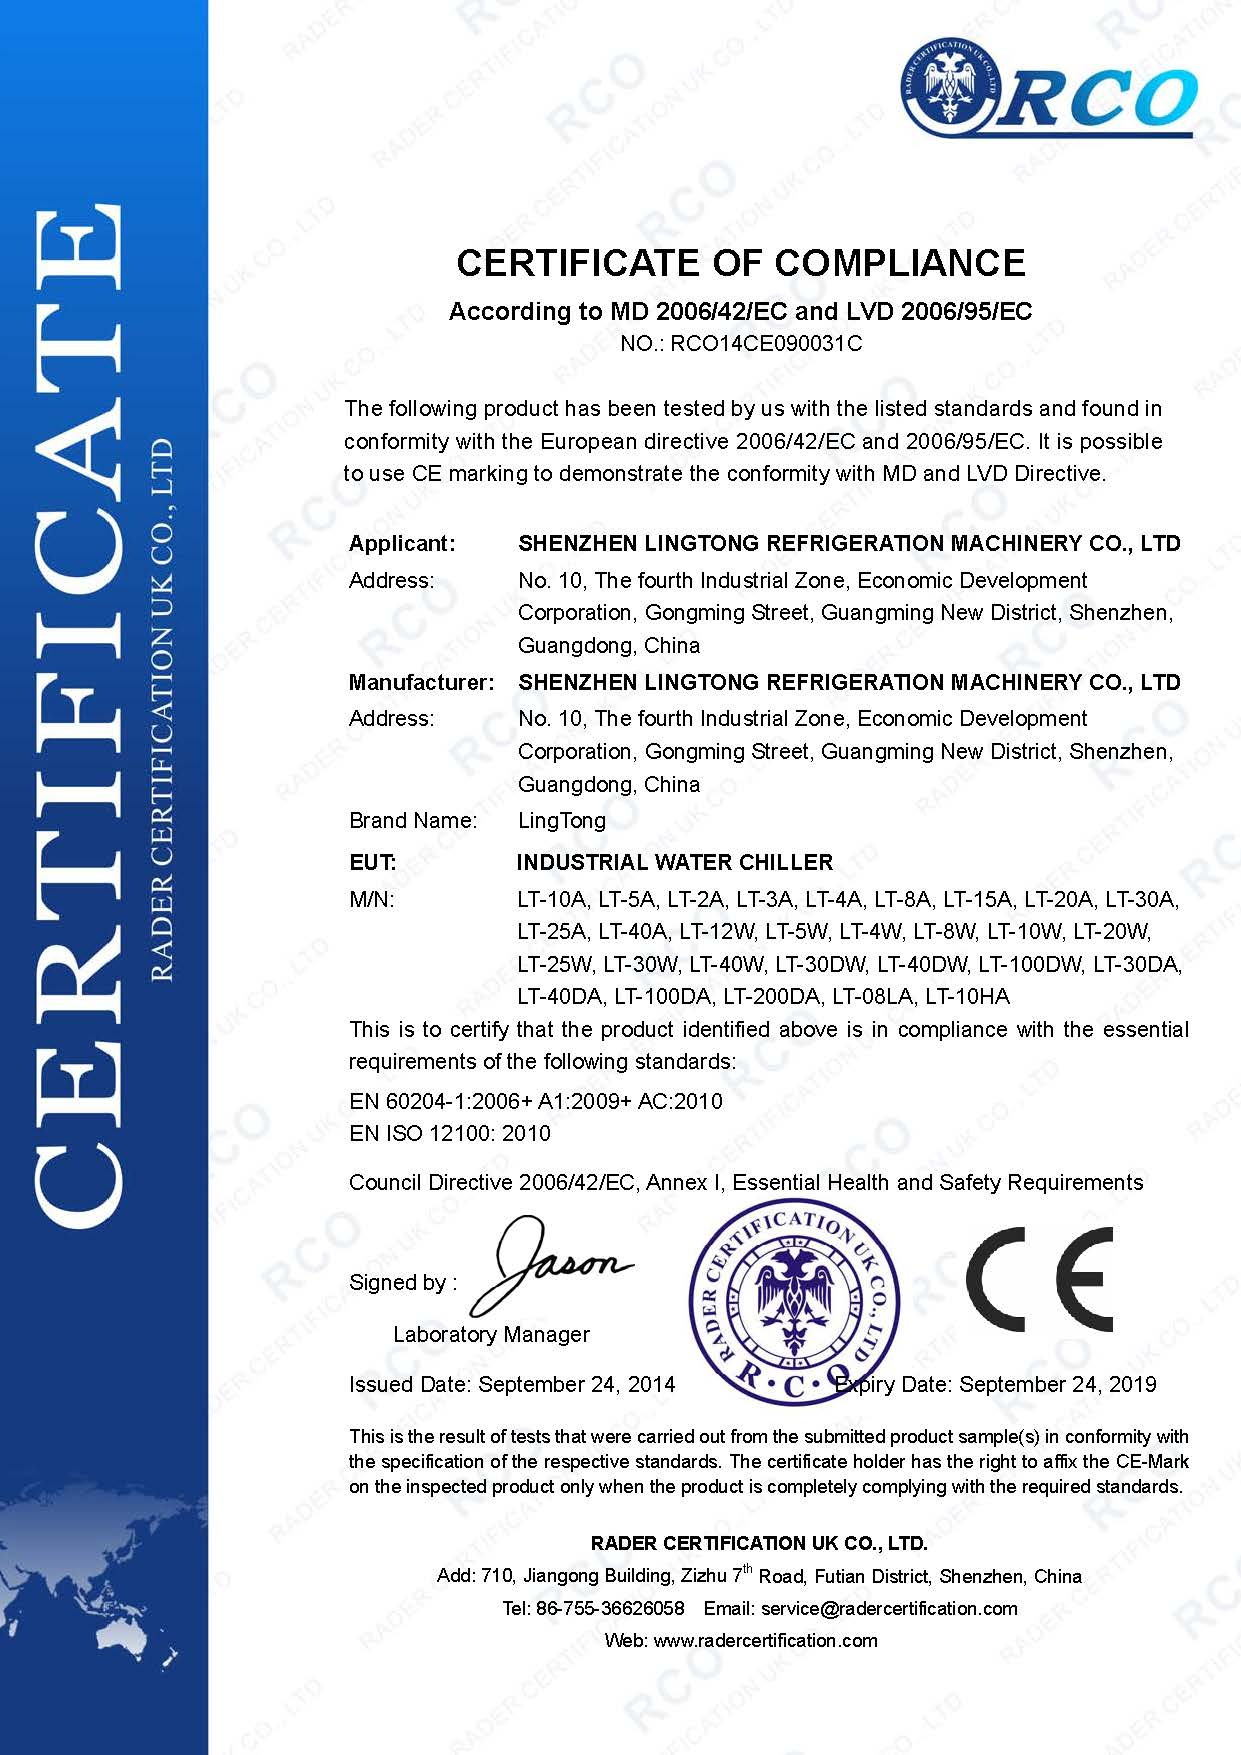 CE certification of industrial water chillers